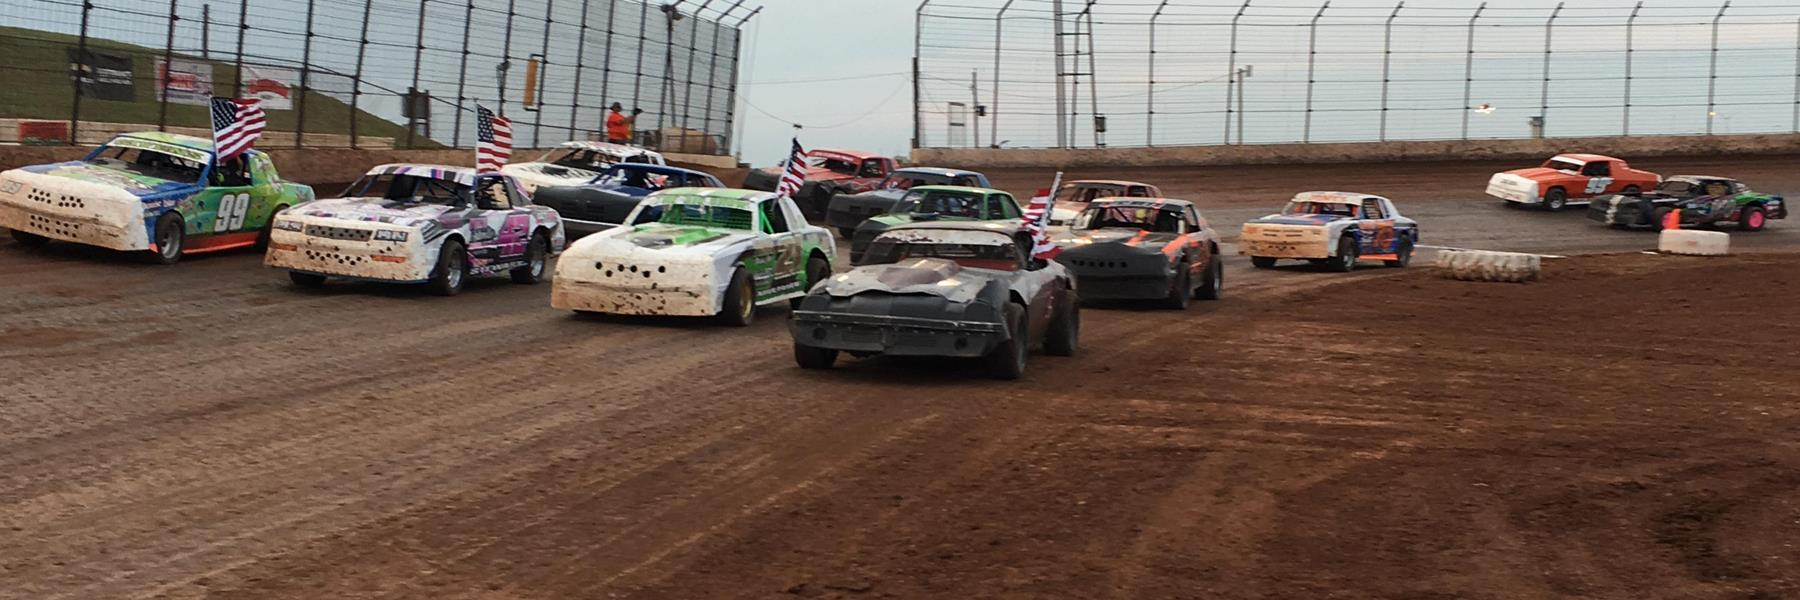 Western Outlaw Pure Stock Series